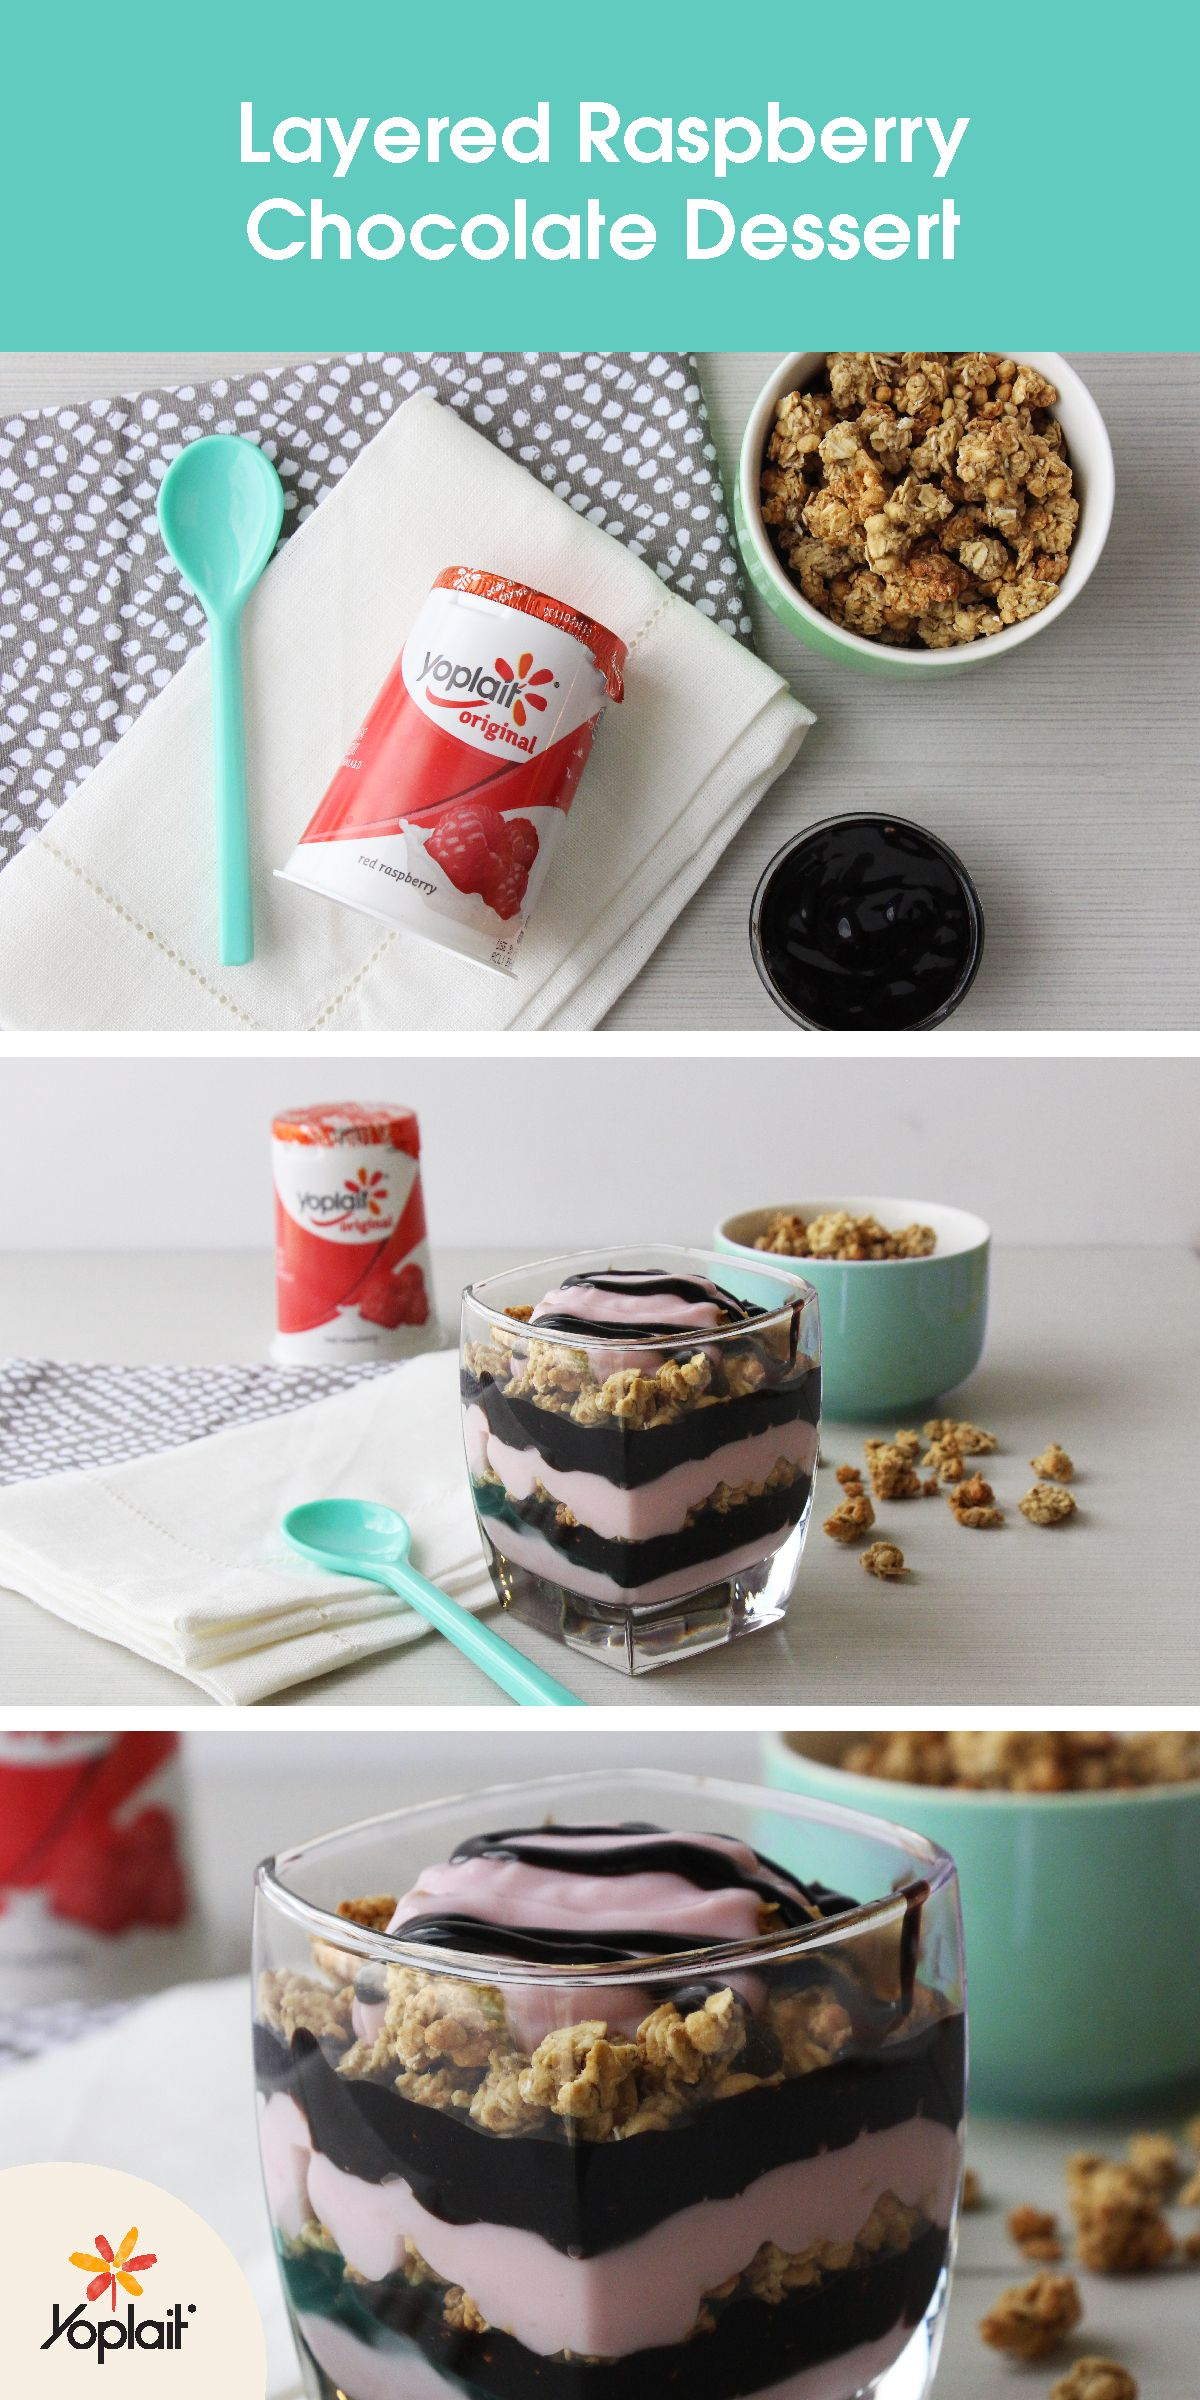 This Layered Raspberry Chocolate Dessert from Katie Quinn is the dreamiest must-try snack hack around. Make your own by layering a glass with chocolate syrup, granola and Yoplait Original Red Raspberry yogurt. Repeat until the glass is full and enjoy!